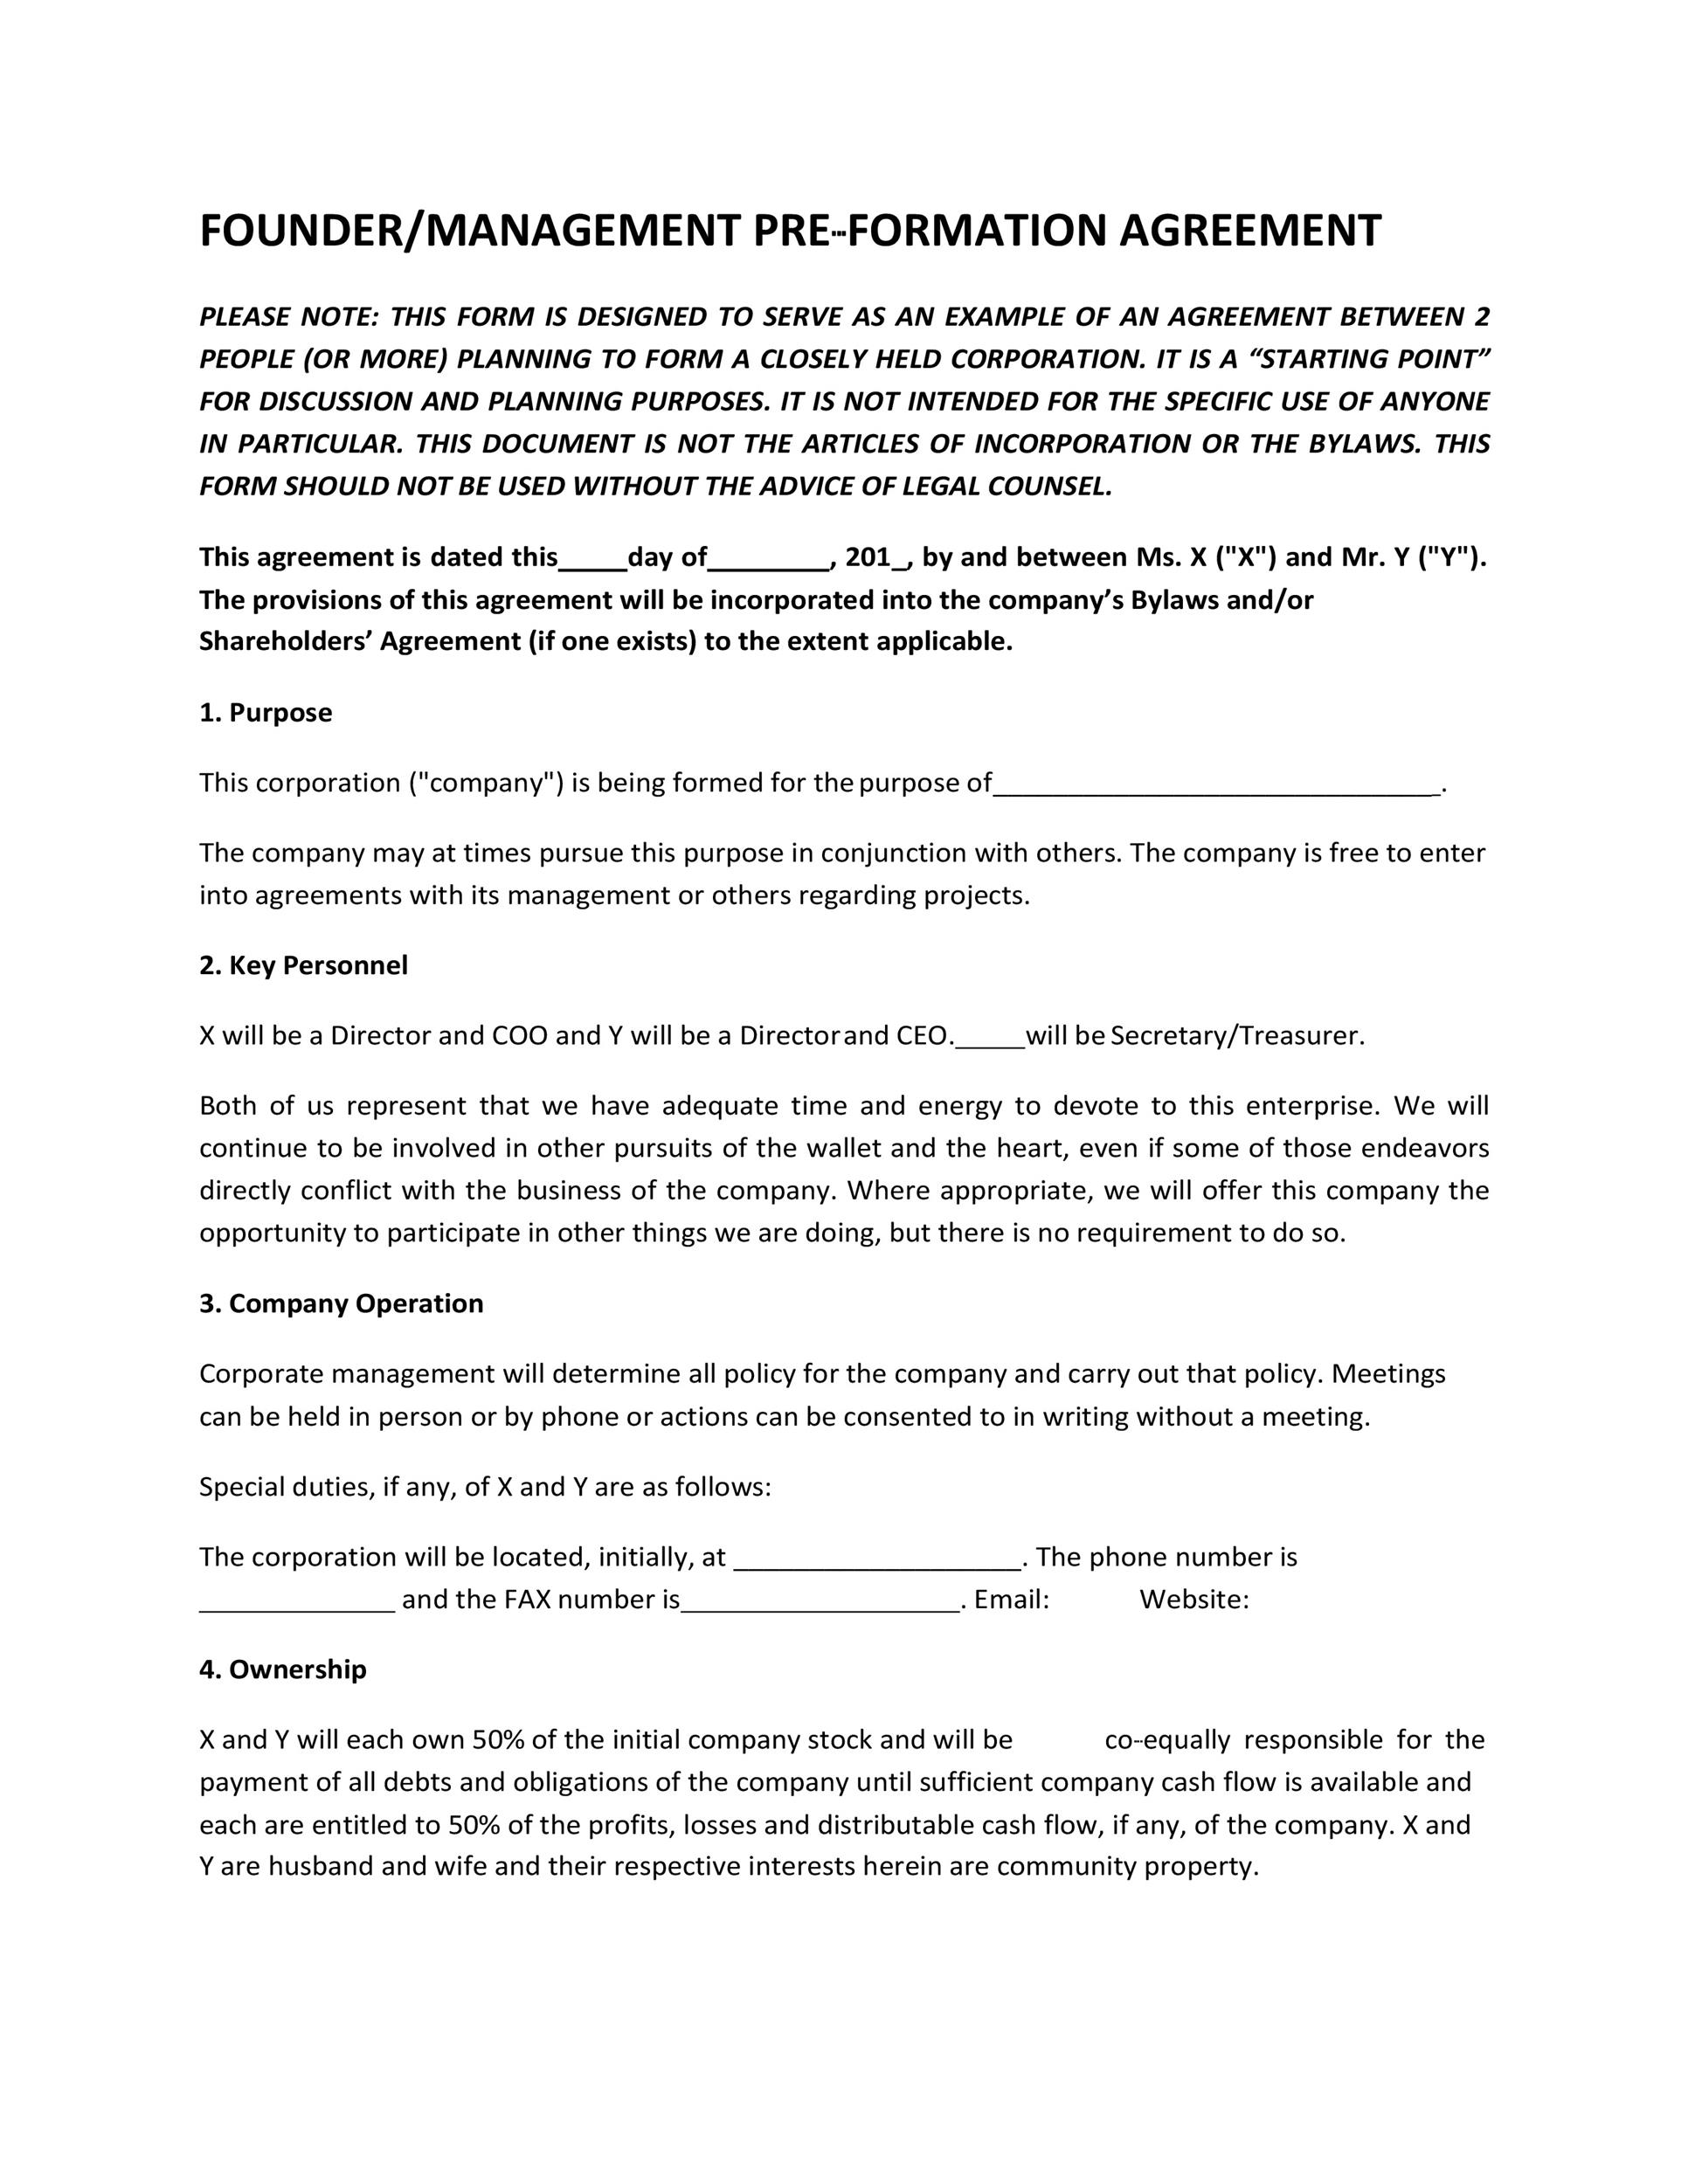 Free founders agreement 17